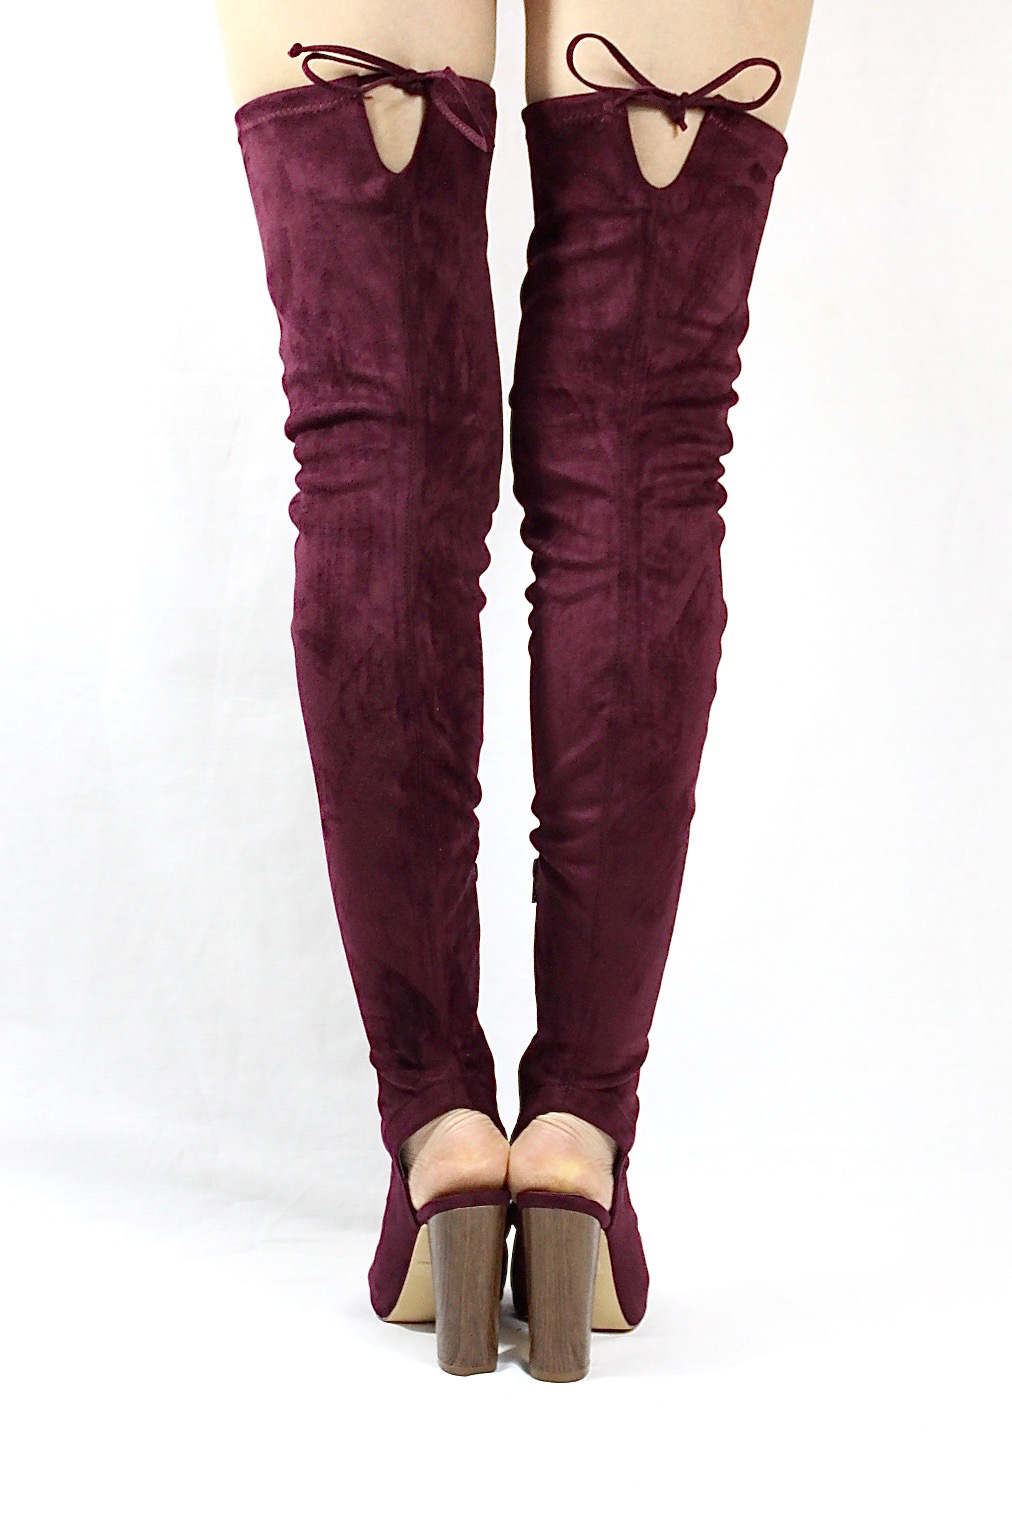 Liliana Sage-44 Plum Over the Knee Thigh High Open Toe Boots-4274